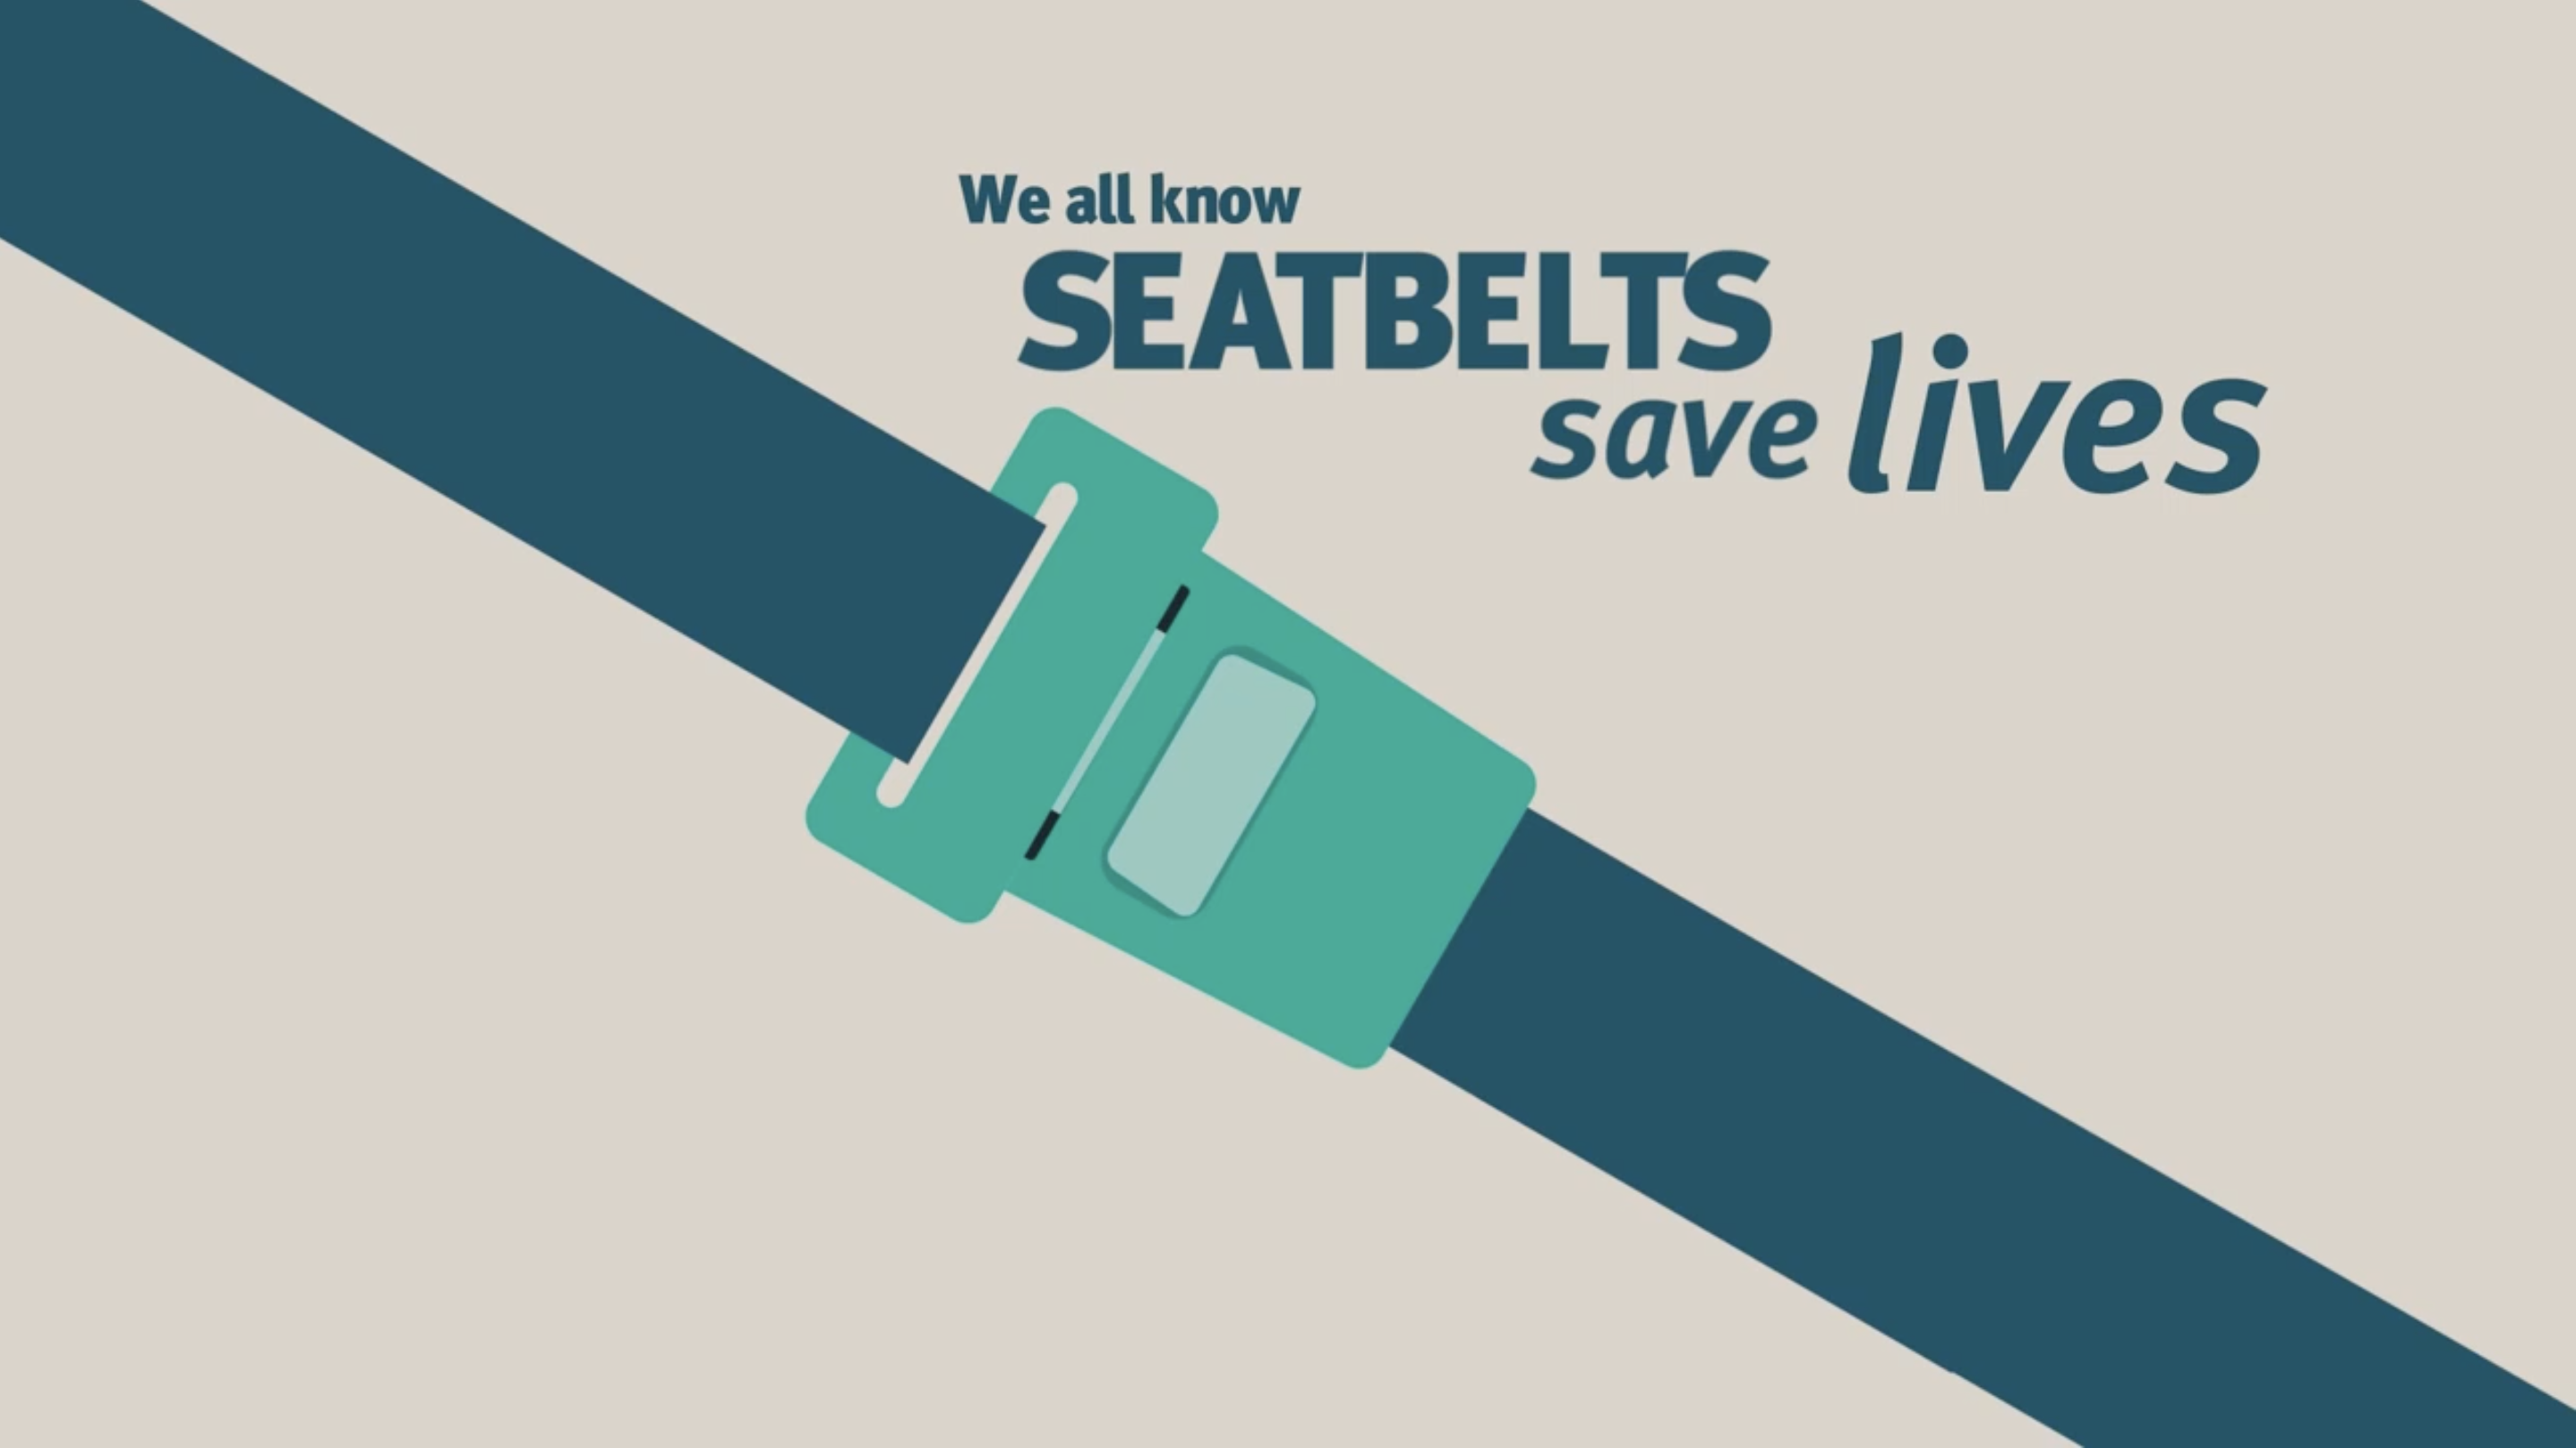 Seatbelts save lives